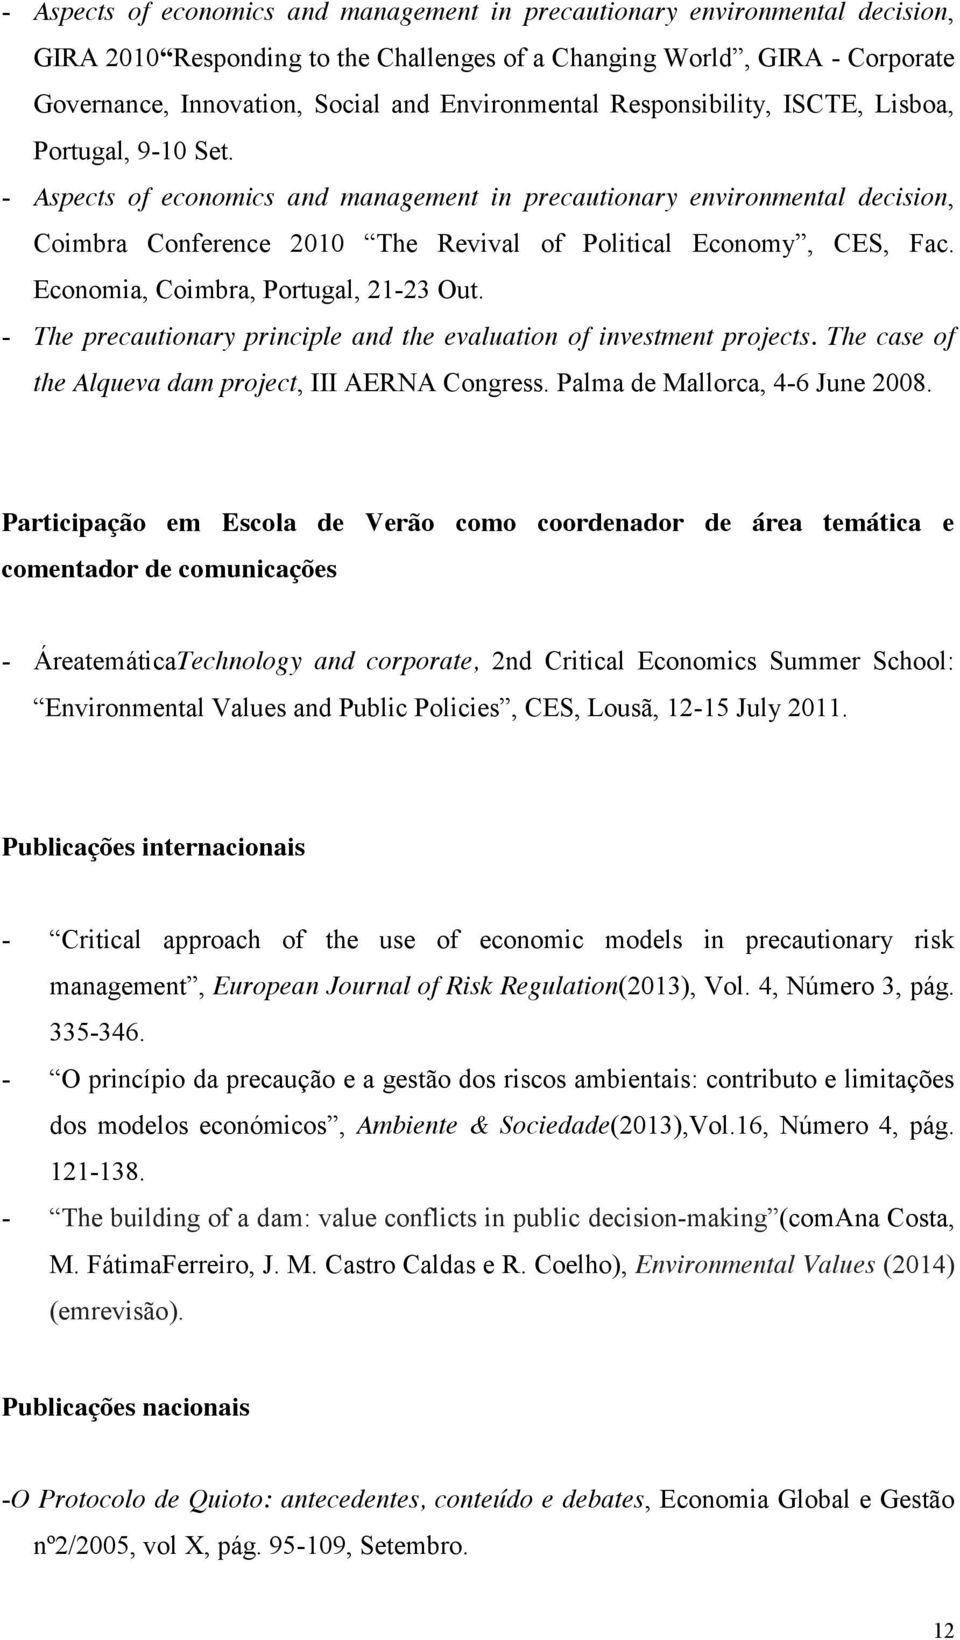 - Aspects of economics and management in precautionary environmental decision, Coimbra Conference 2010 The Revival of Political Economy, CES, Fac. Economia, Coimbra, Portugal, 21-23 Out.